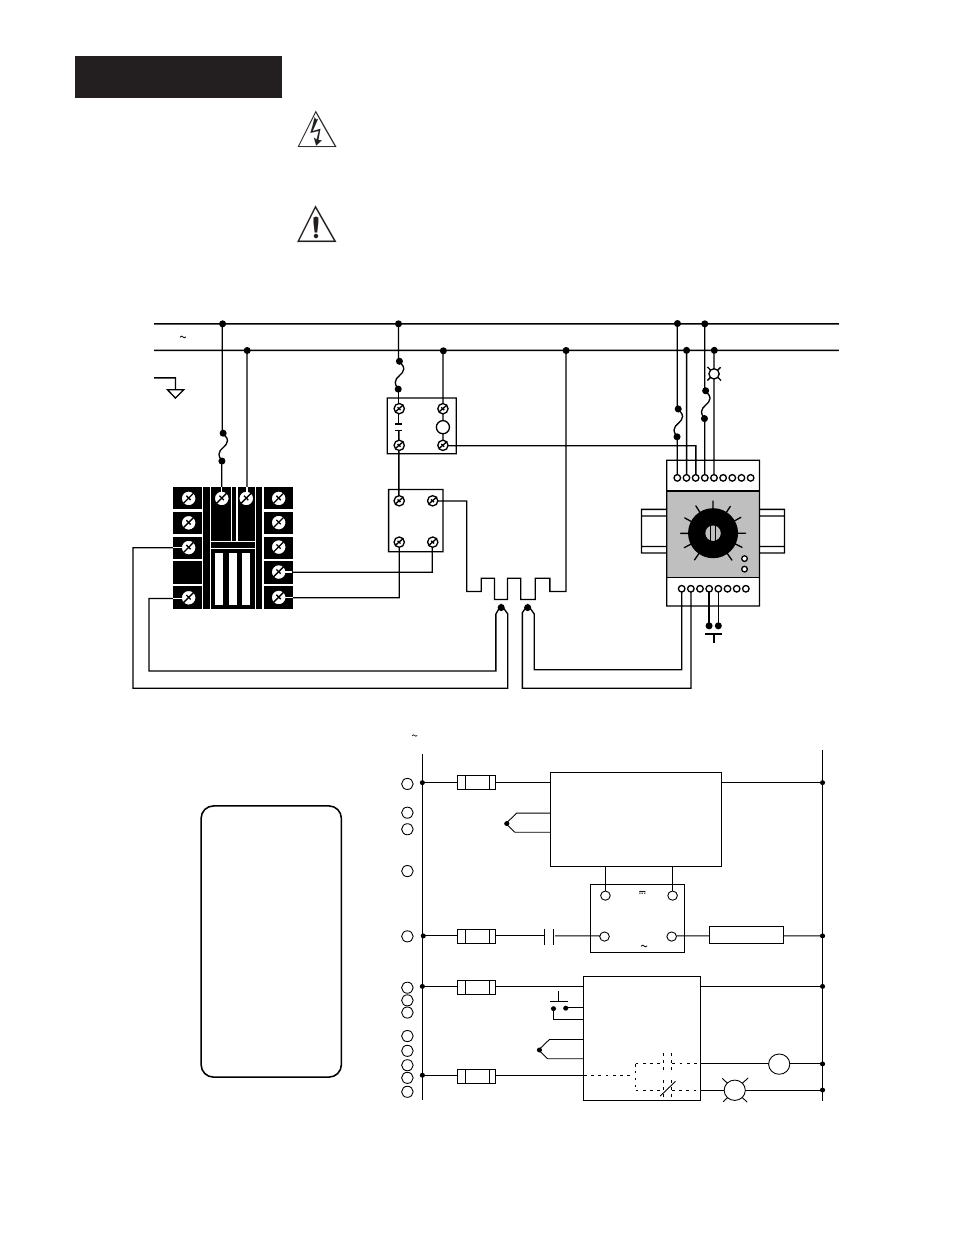 watlow-series-965-page12 System Schematics Diagram on samsung lcd tv, sony tv, computer circuit board, am tube radio, digital multimeter,